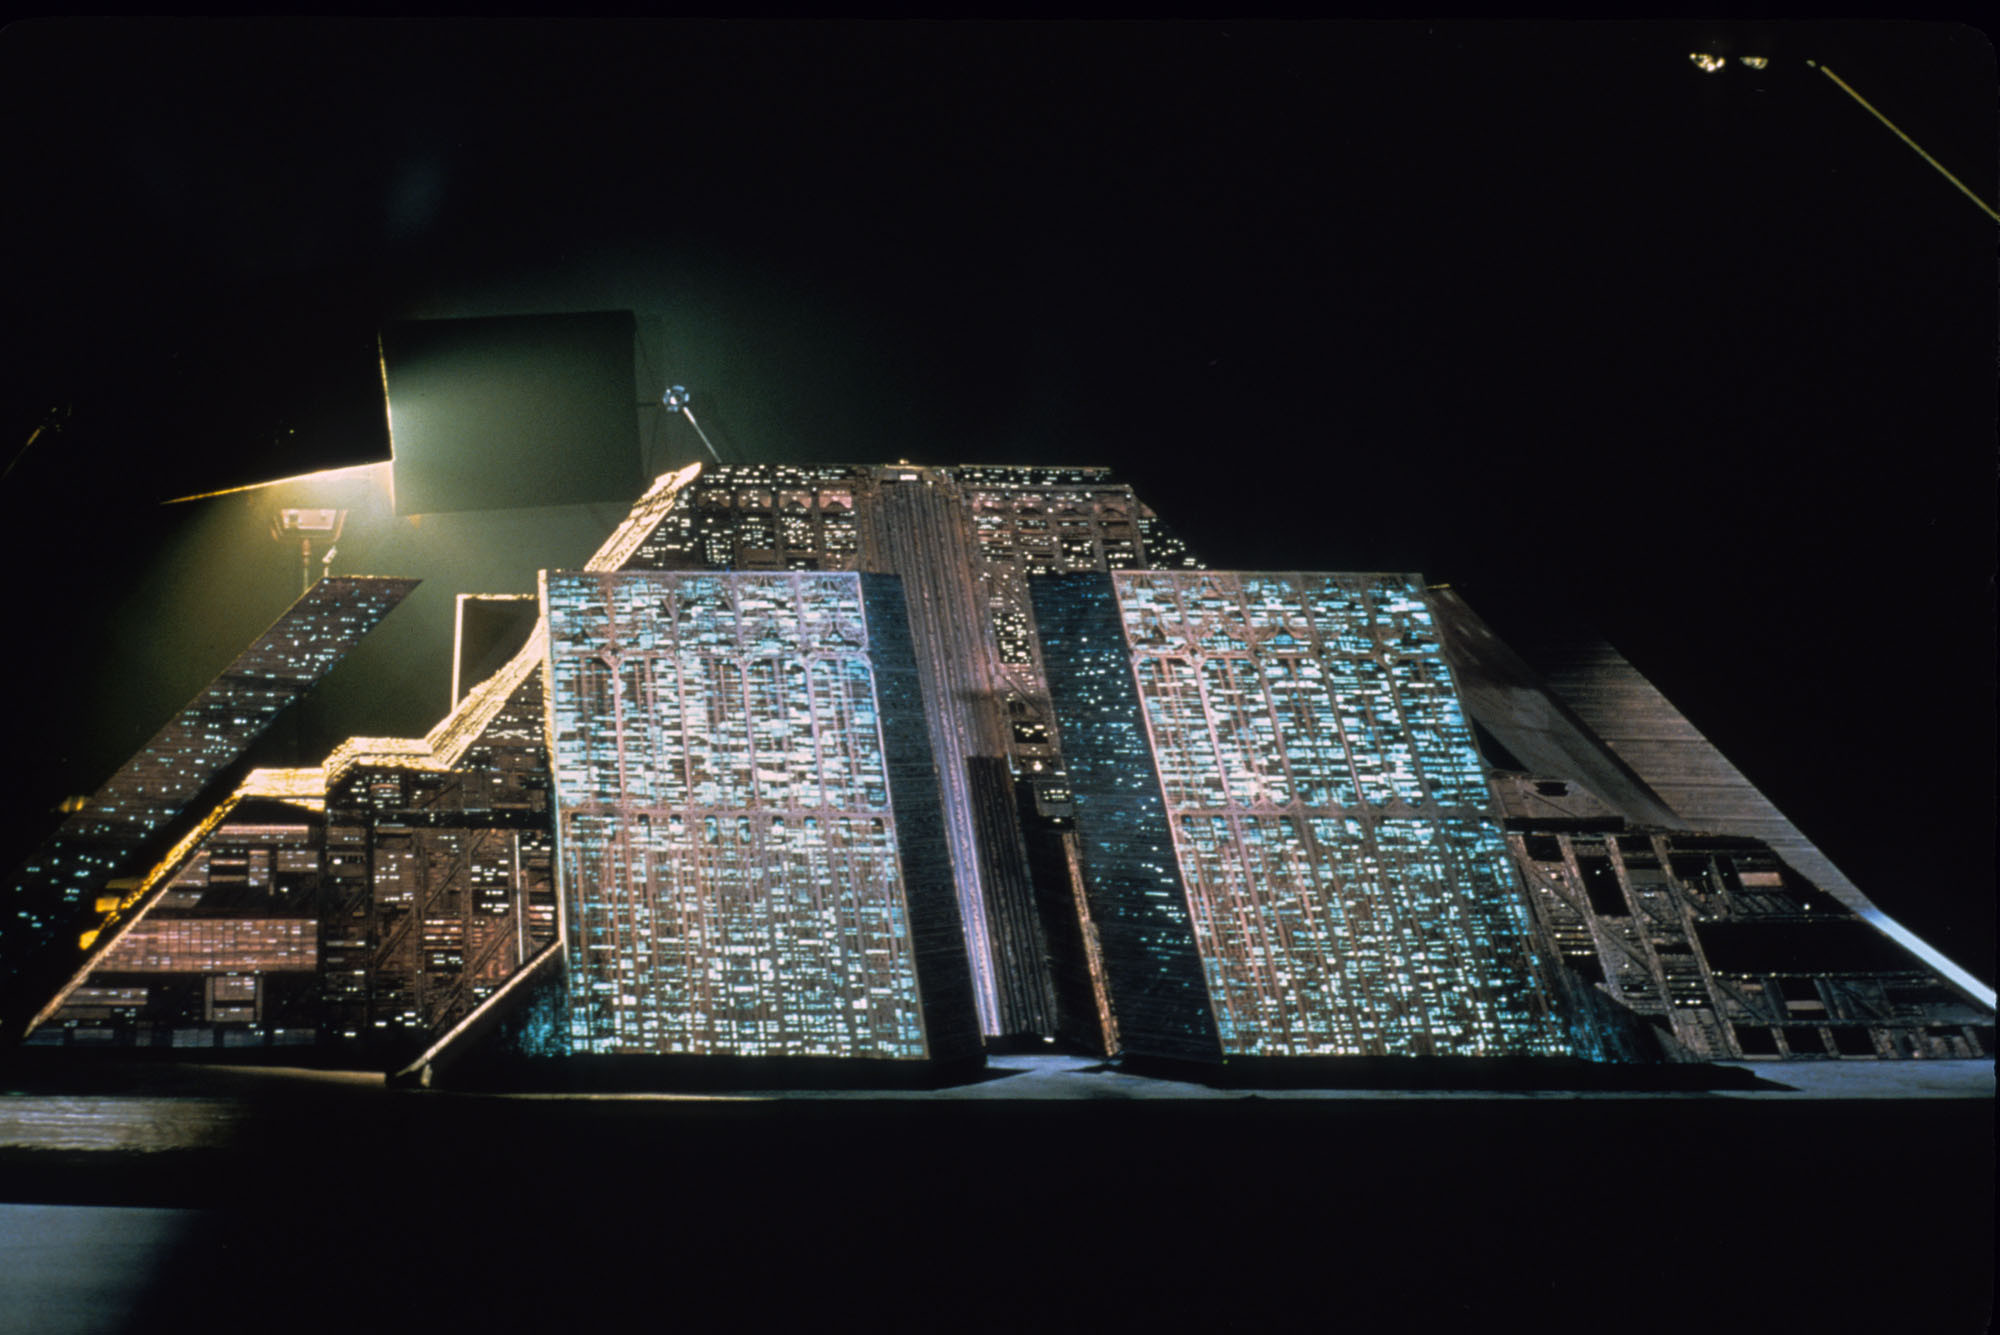 A New, Behind-the-Scenes Look at the Blade Runner Model Shop, via Imgur